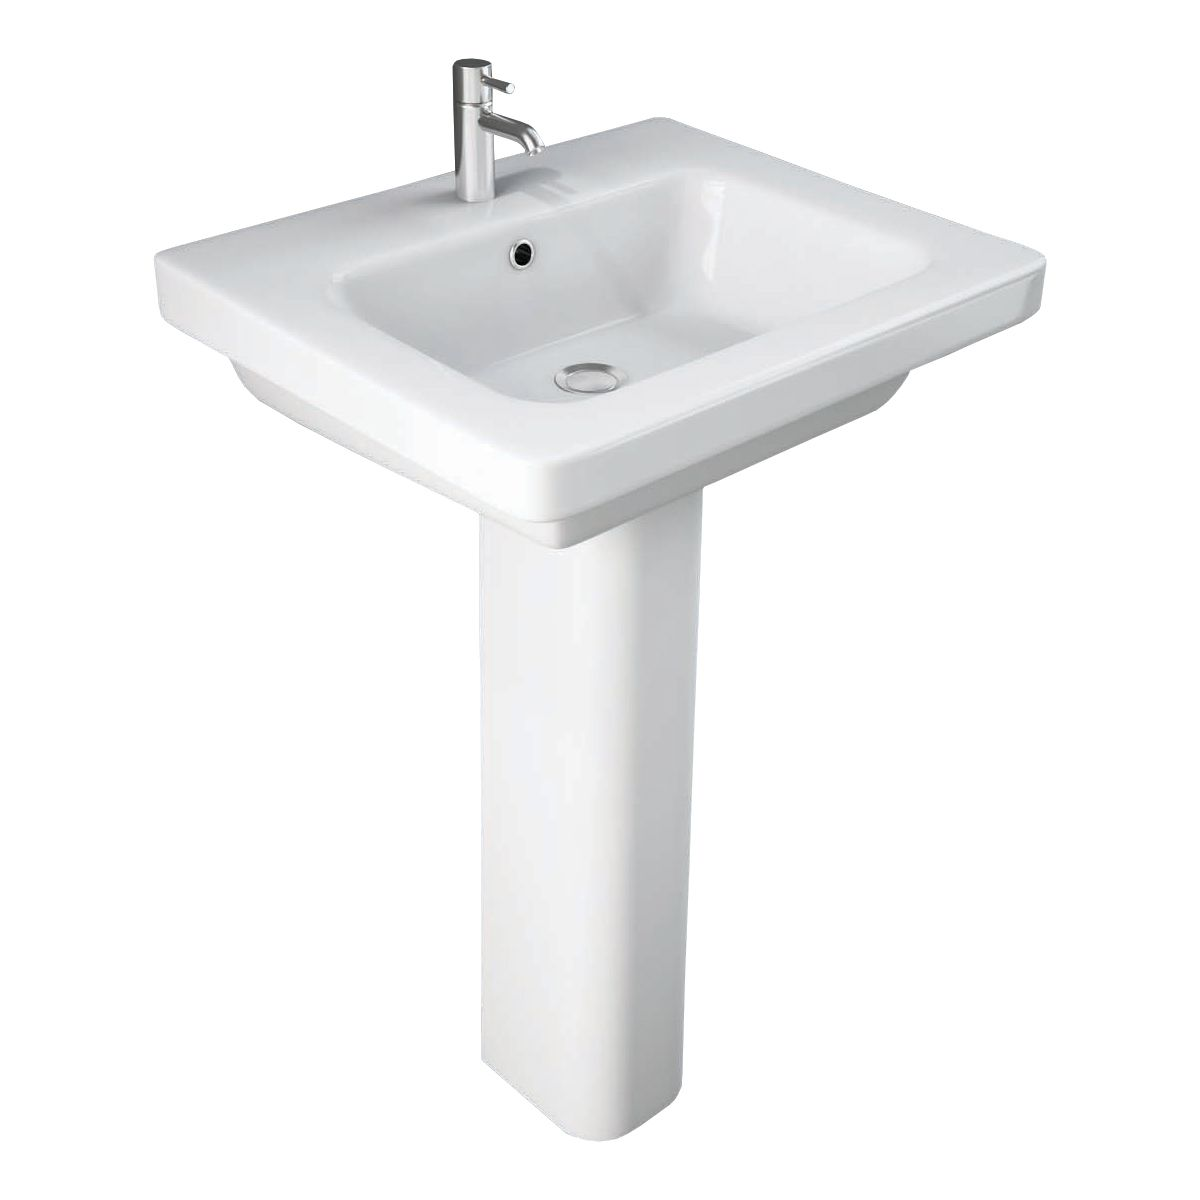 RAK Resort 1 Tap Hole Basin with Full Pedestal